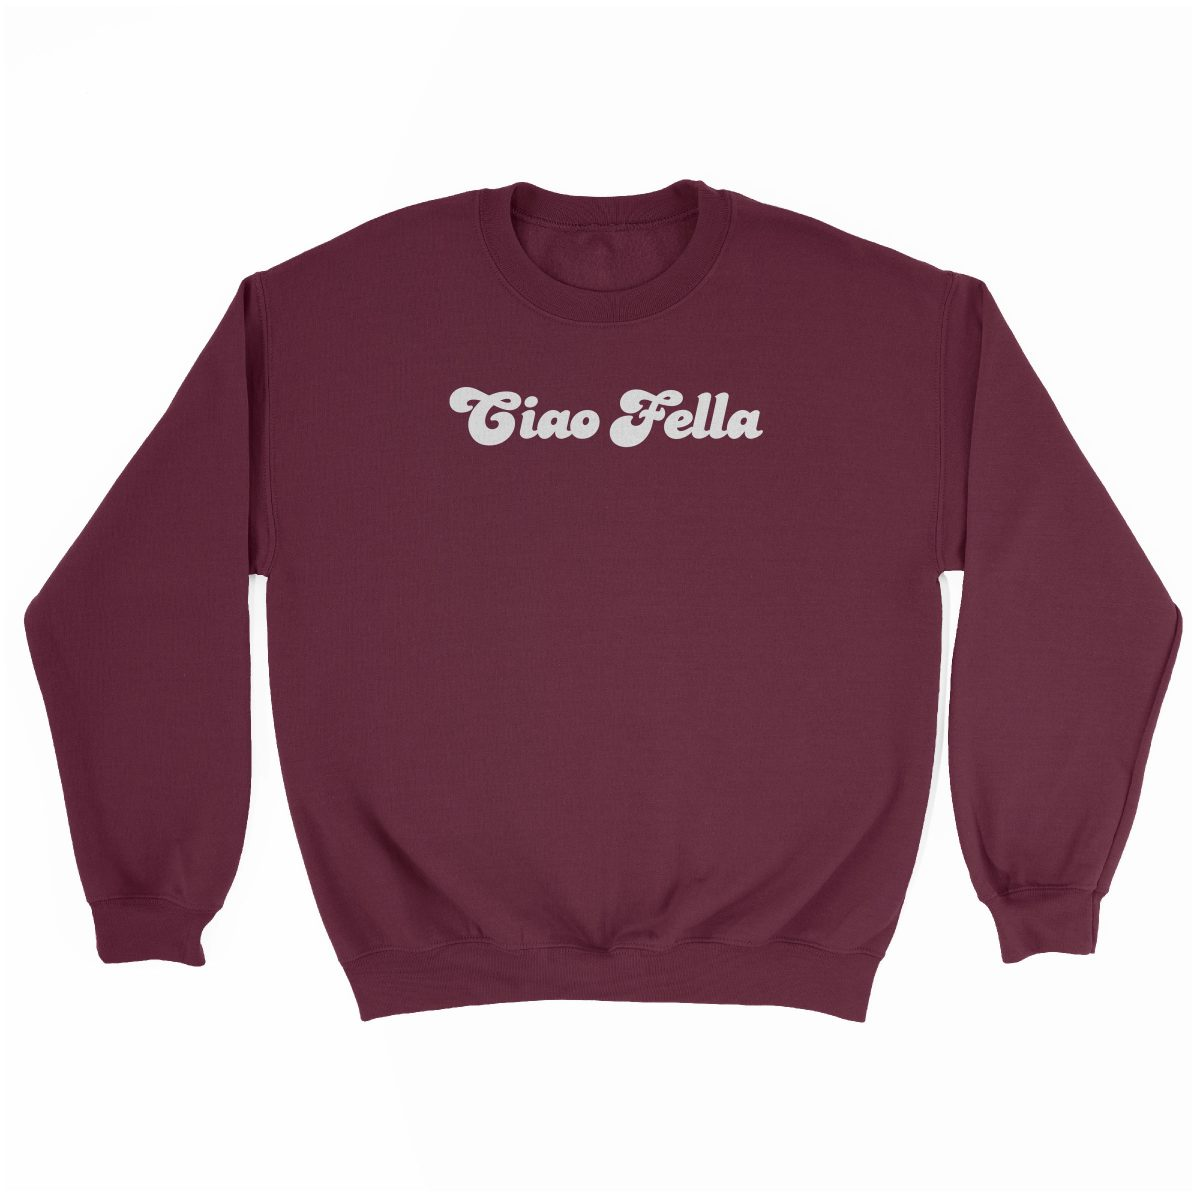 """CIAO FELLA"" funny sweatshirt in maroon by kikicutt"